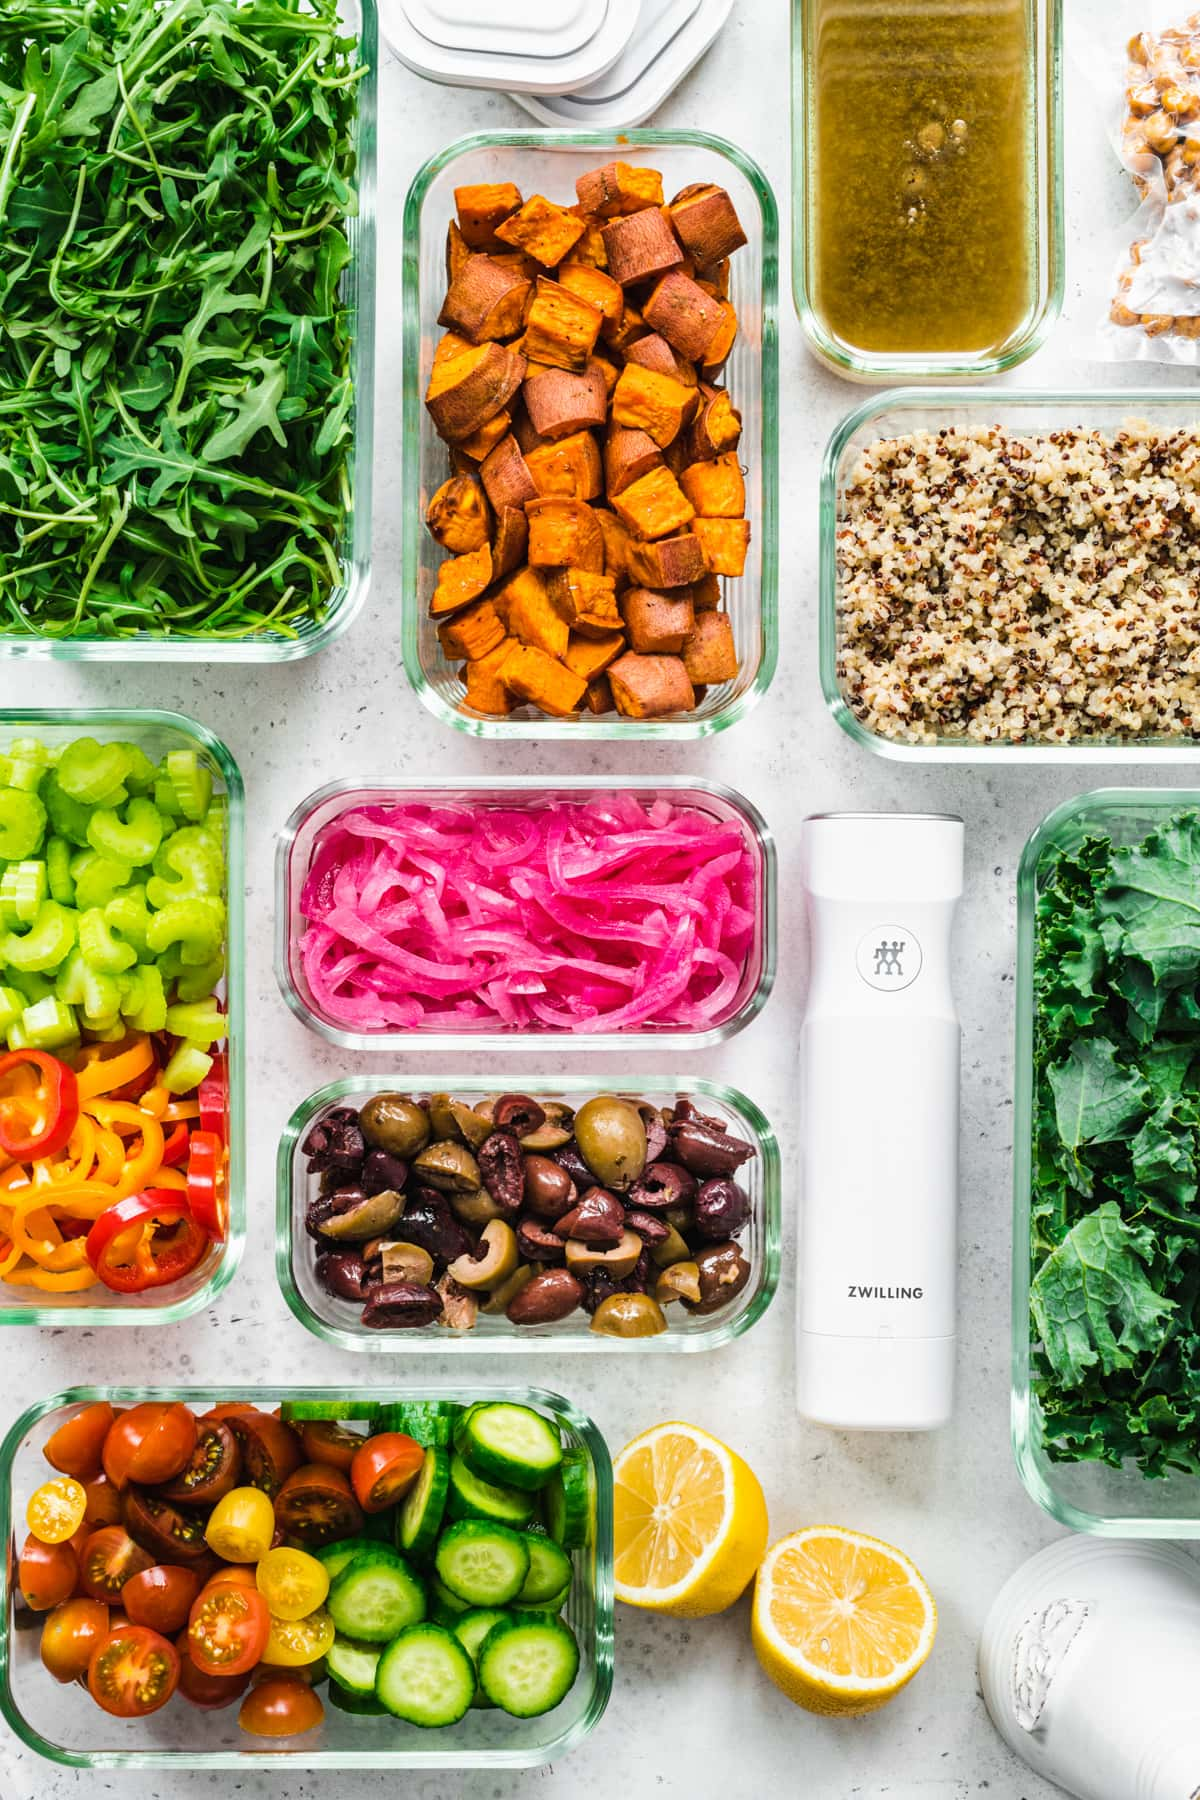 overhead view of several meal prep containers filled with various salad ingredients, like roasted and raw sliced vegetables, greens, quinoa, etc.